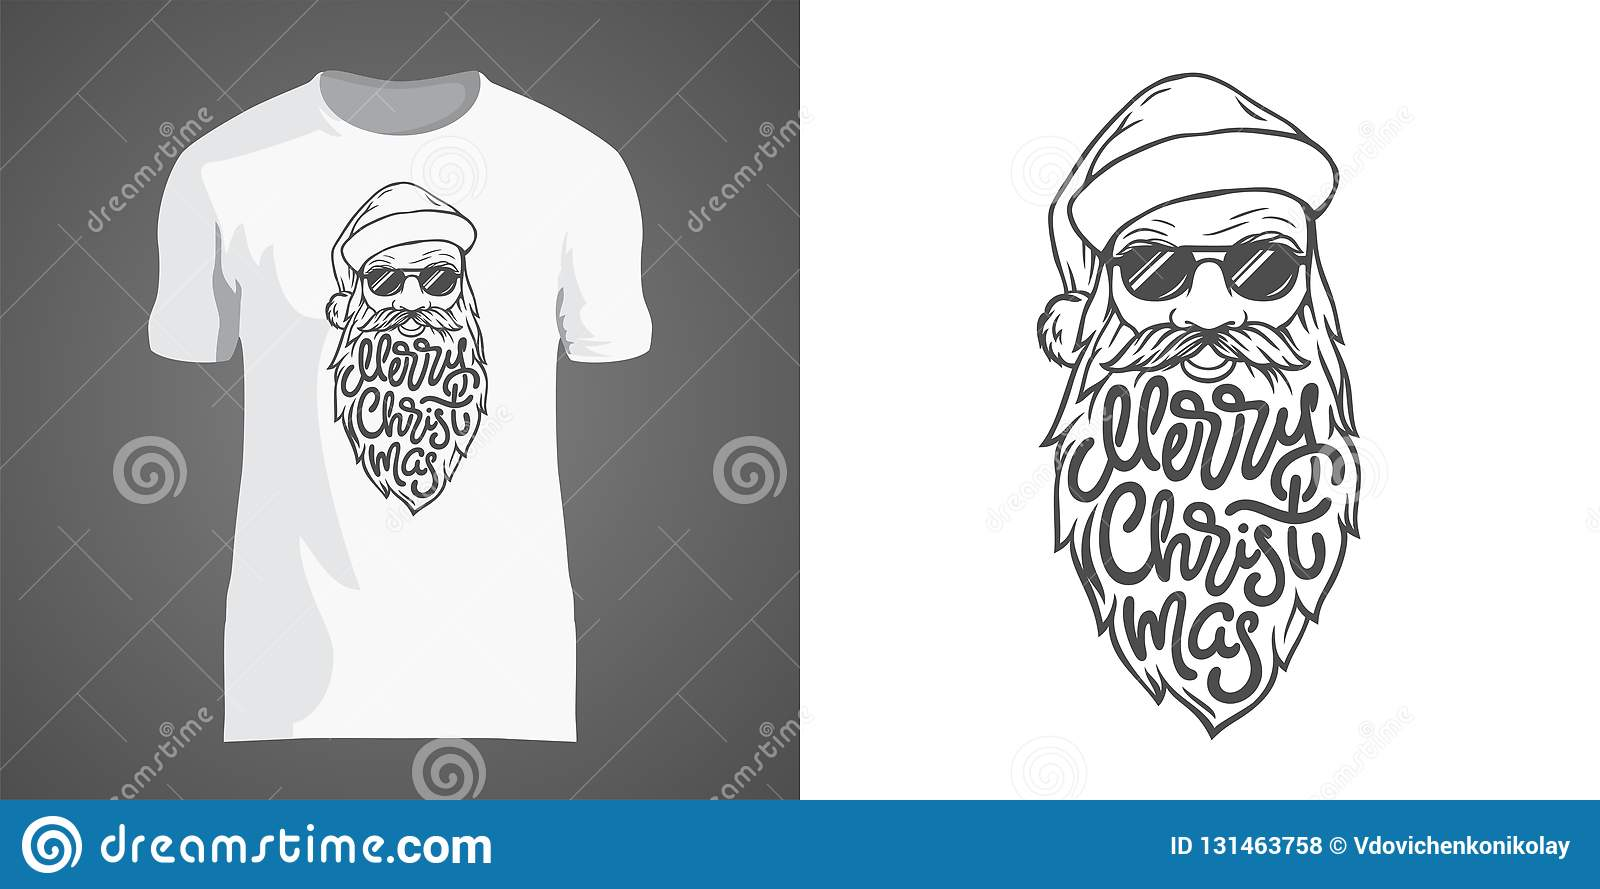 Creative t-shirt design with illustration of Santa in sunglasses with big beard. Lettering Merry Christmas in form of